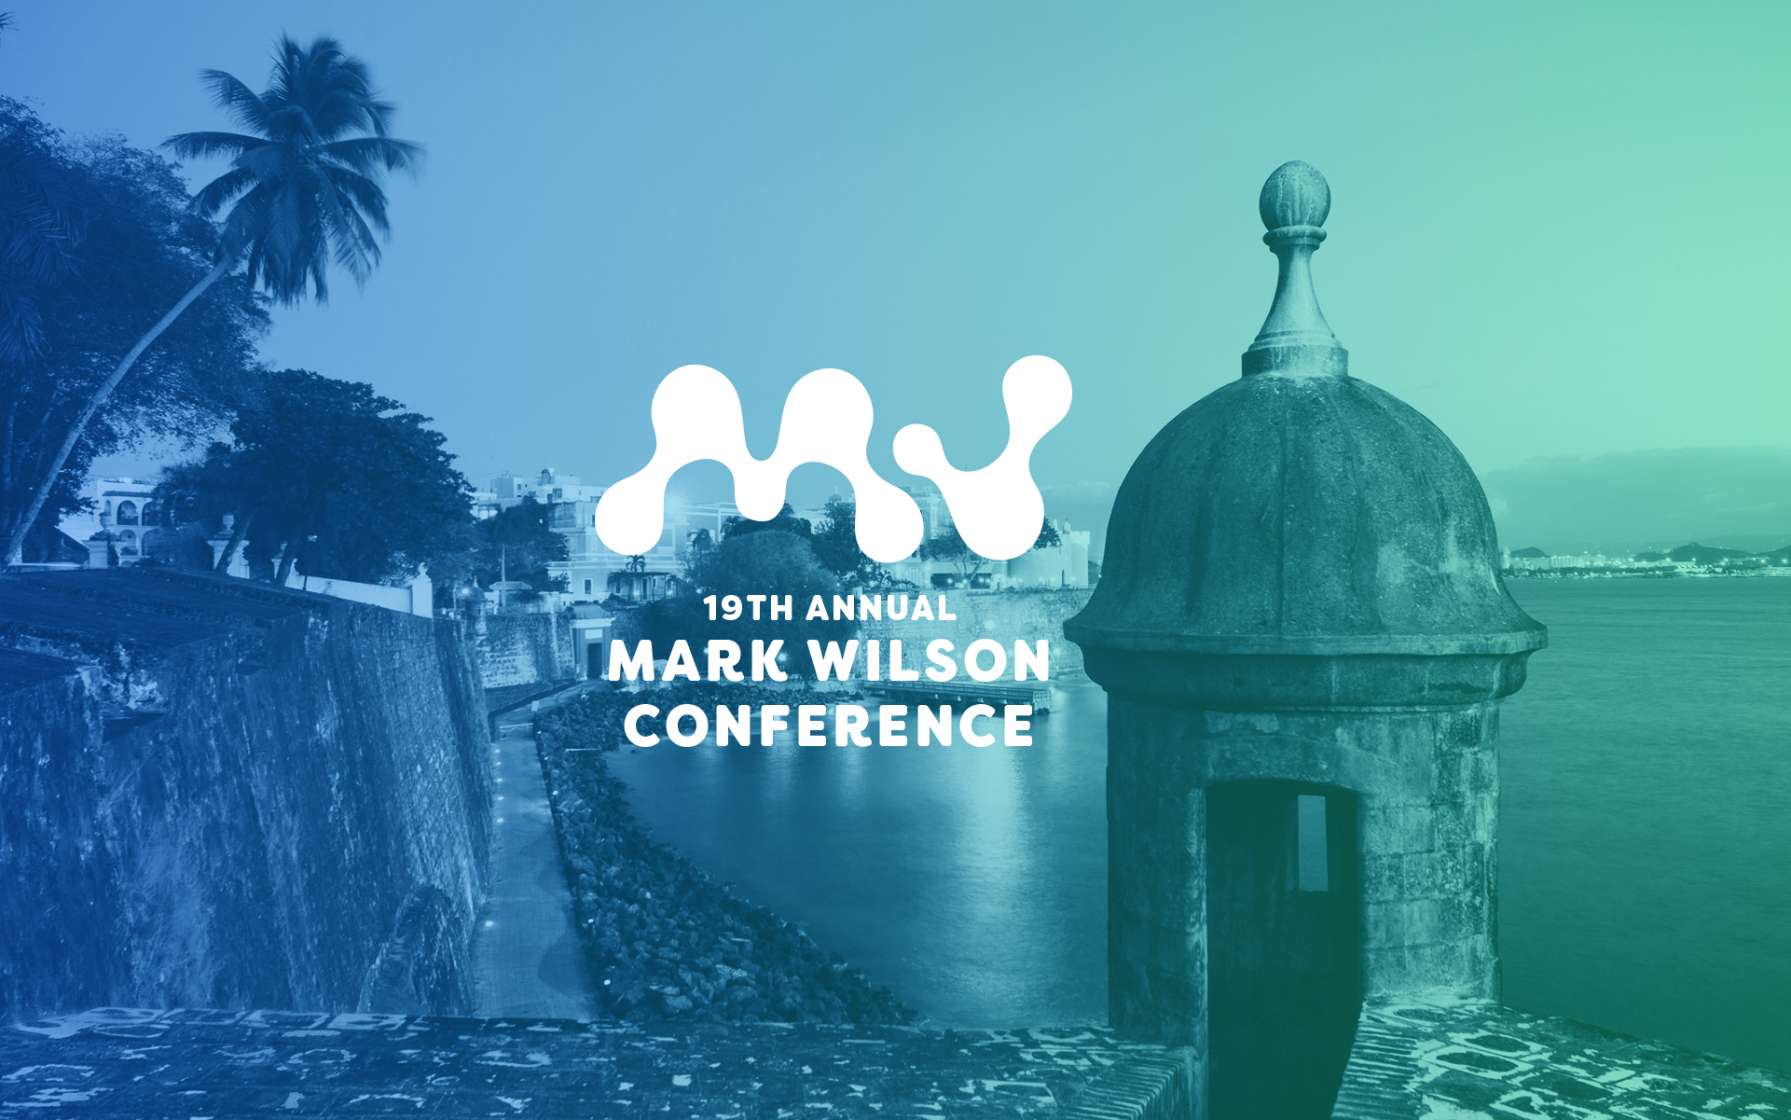 The 19th Annual Mark Wilson Conference will take place at the InterContinental San Juan, February 7-10, 2020.